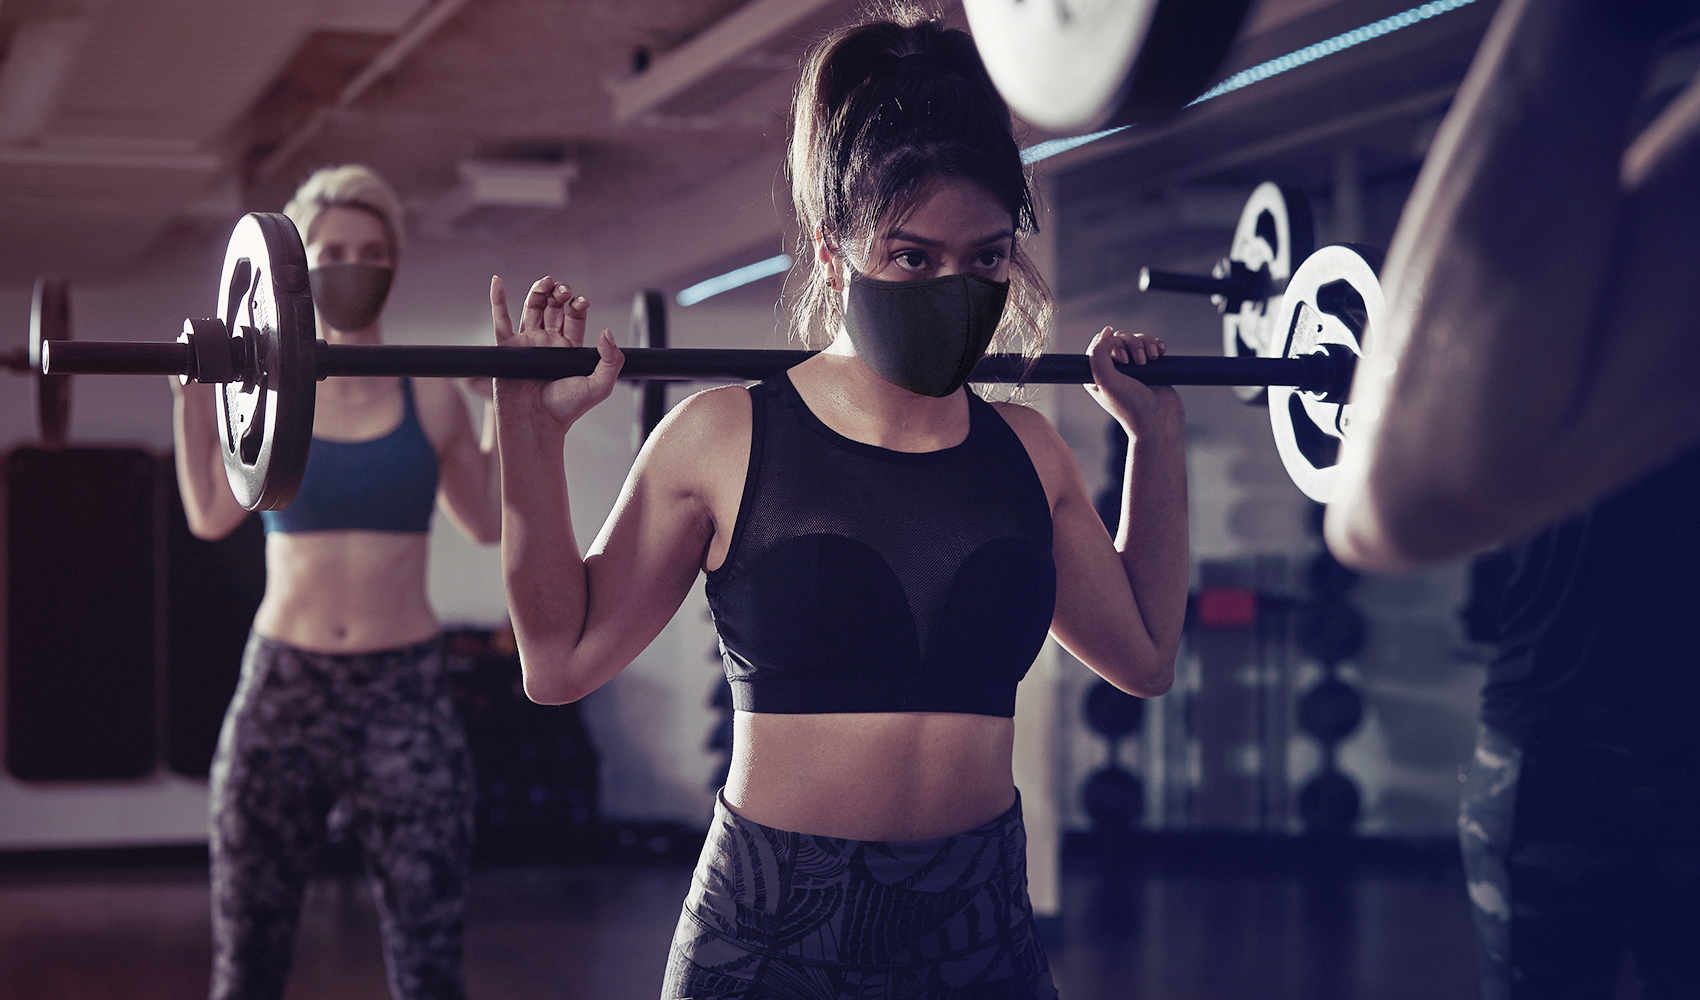 Beginning 8/27, Masks are required at Healthworks Back Bay, Chestnut Hill, and Coolidge Corner. Members are encouraged to wear masks at Healthworks Cambridge.